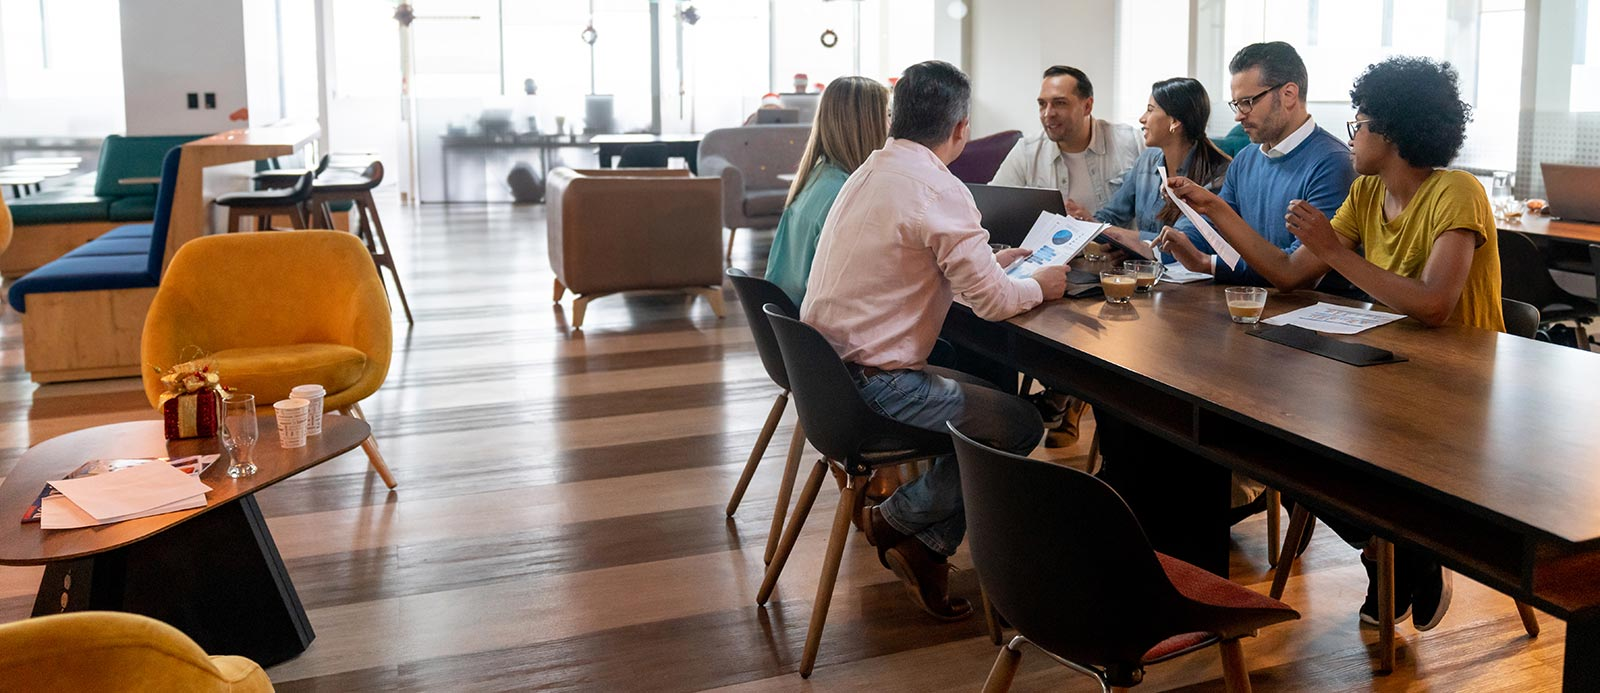 clean-start-banner-people-sitting-at-desk-in-clean-office